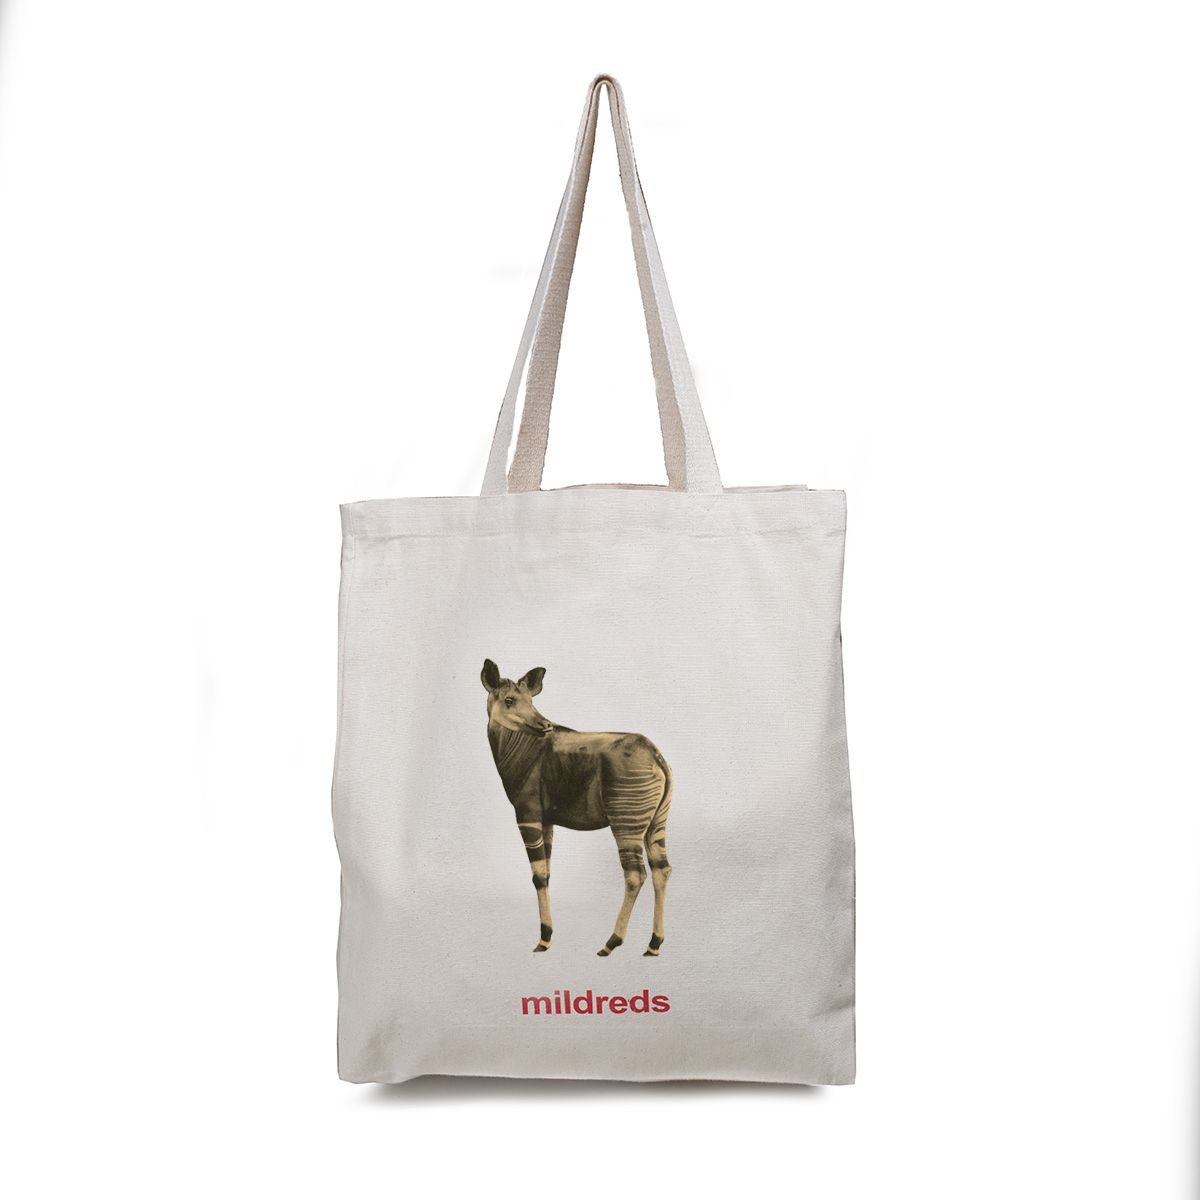 This tote bag from Mildreds is some of the best restaurant merch to buy in London